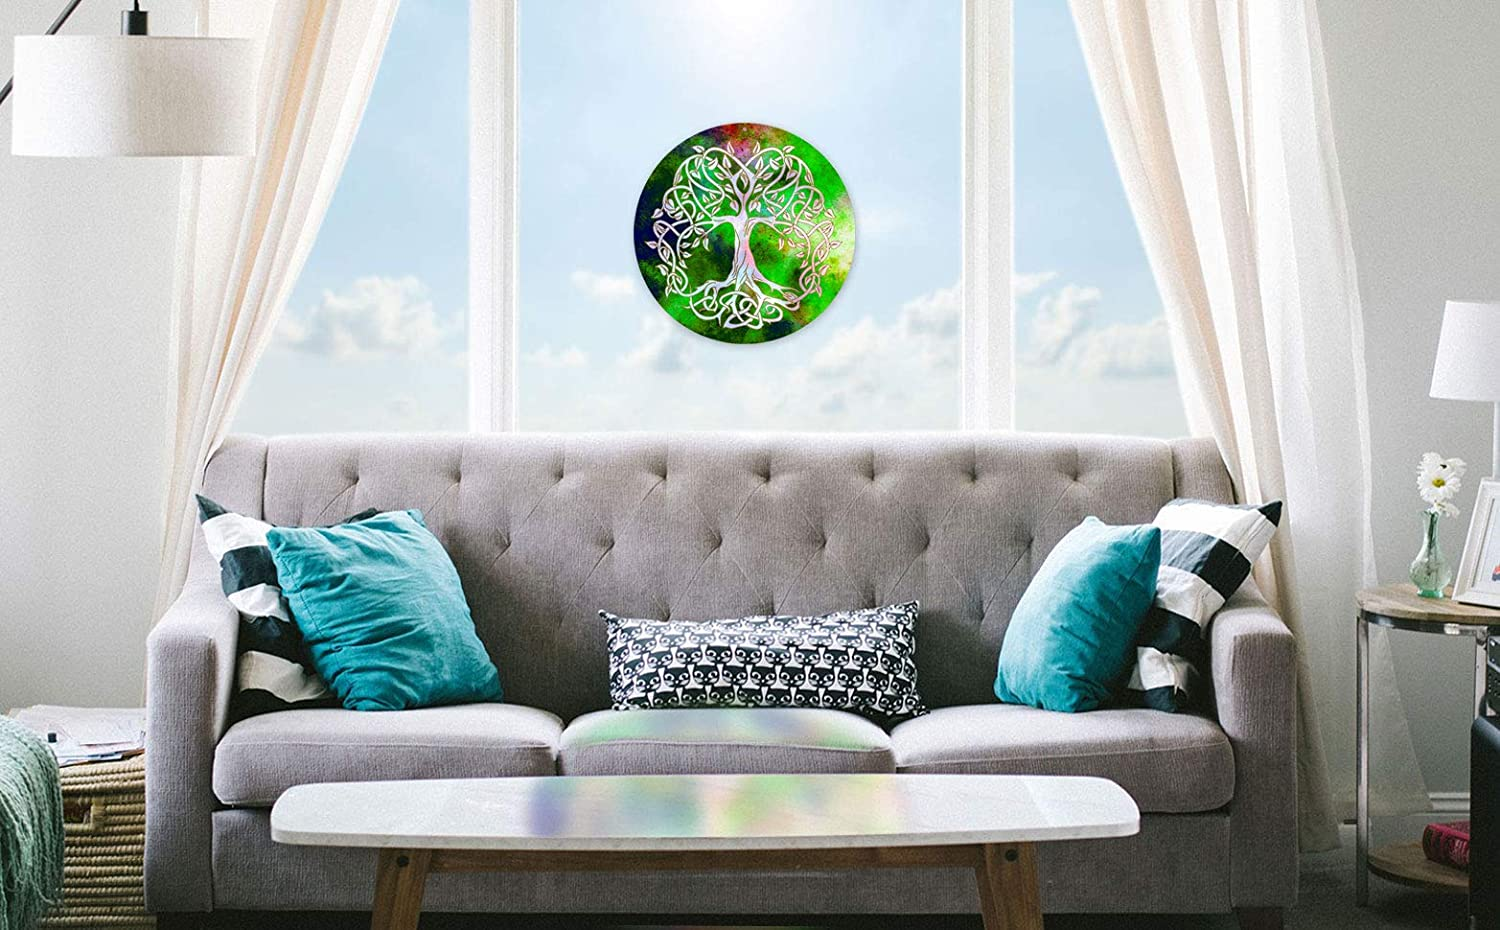 Feng Shui decoration acrylic glass 20.1 /ø 16 inch gift idea birthday Symbol of love Lucky charms tree of life Christmas present Hanger window decorations Sun catcherTree of Life No